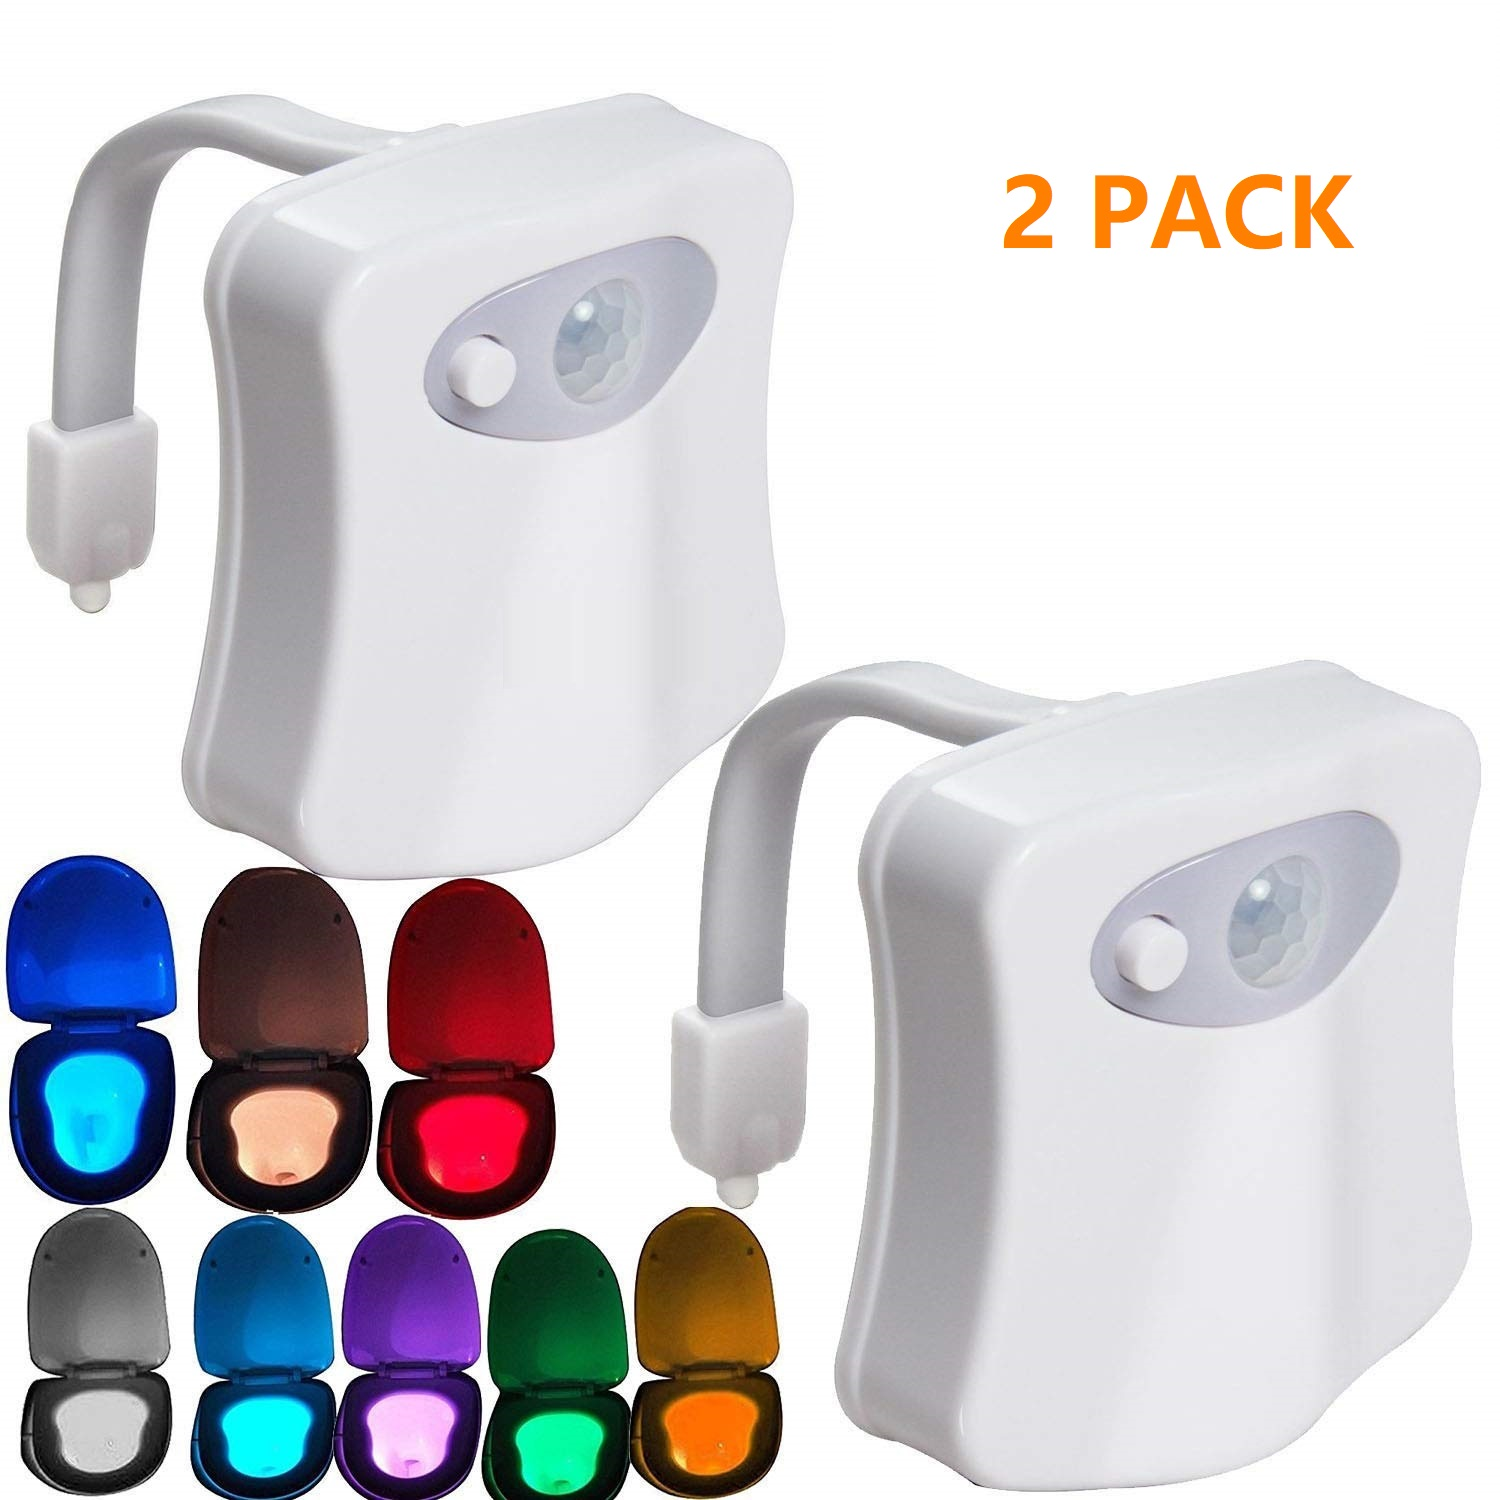 2PACK Toilet Night Light Motion Activated 8 Color Changing Led Toilet Seat Light Motion Sensor Toilet Bowl Light, I2431